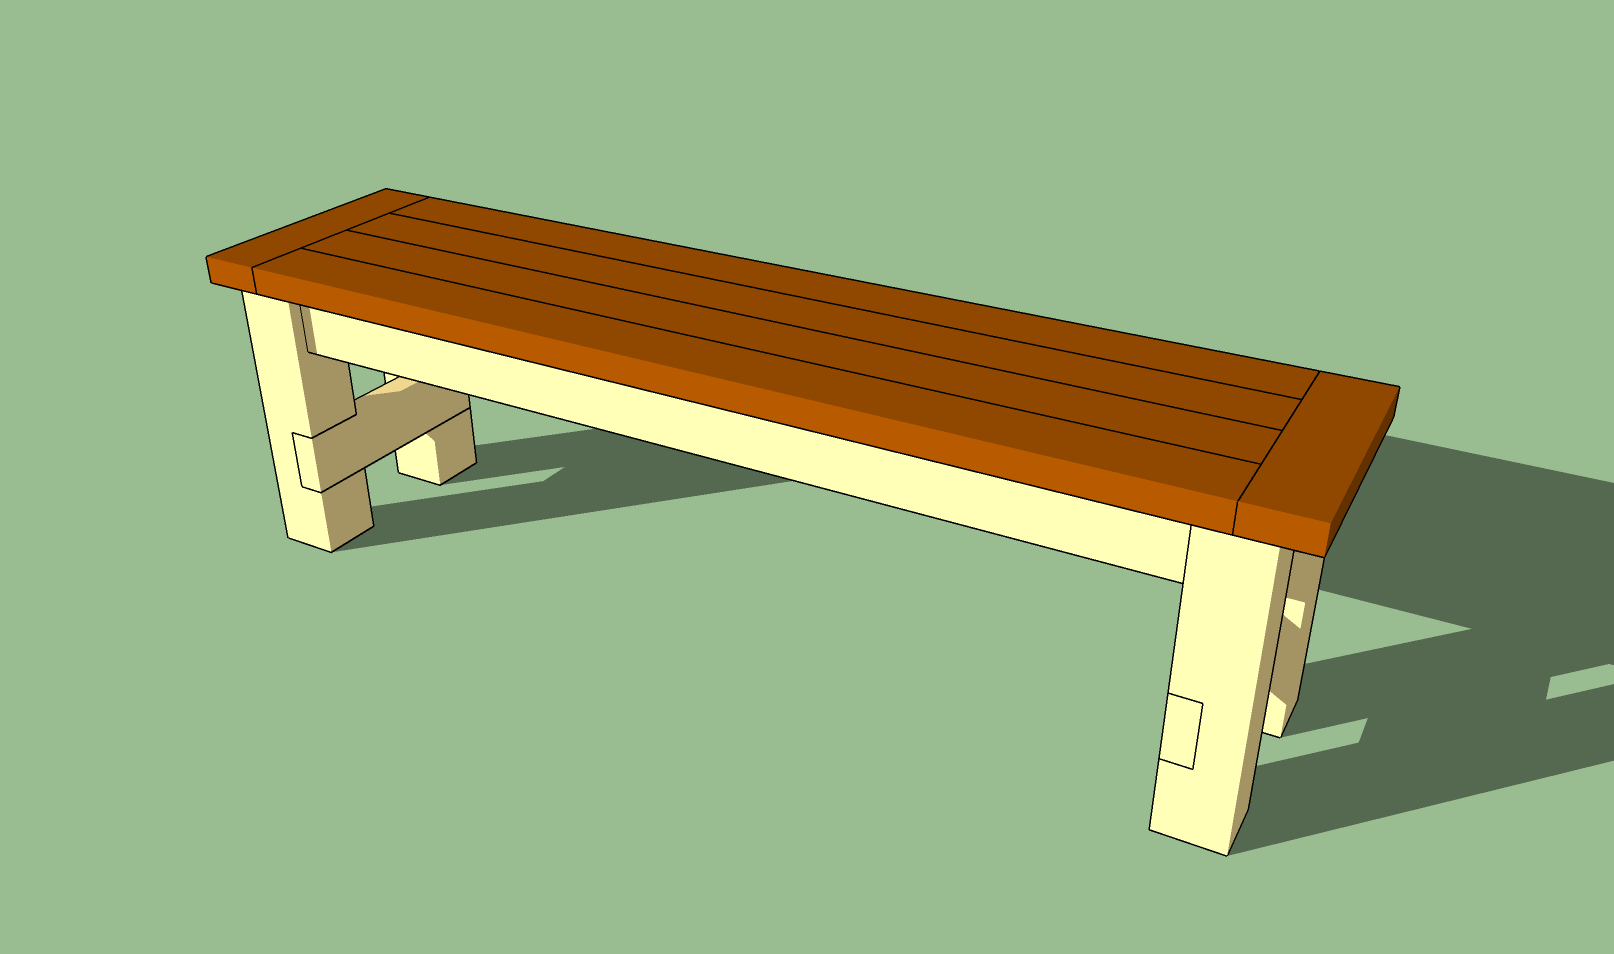 Woodworking simple outdoor bench seat plans PDF Free Download